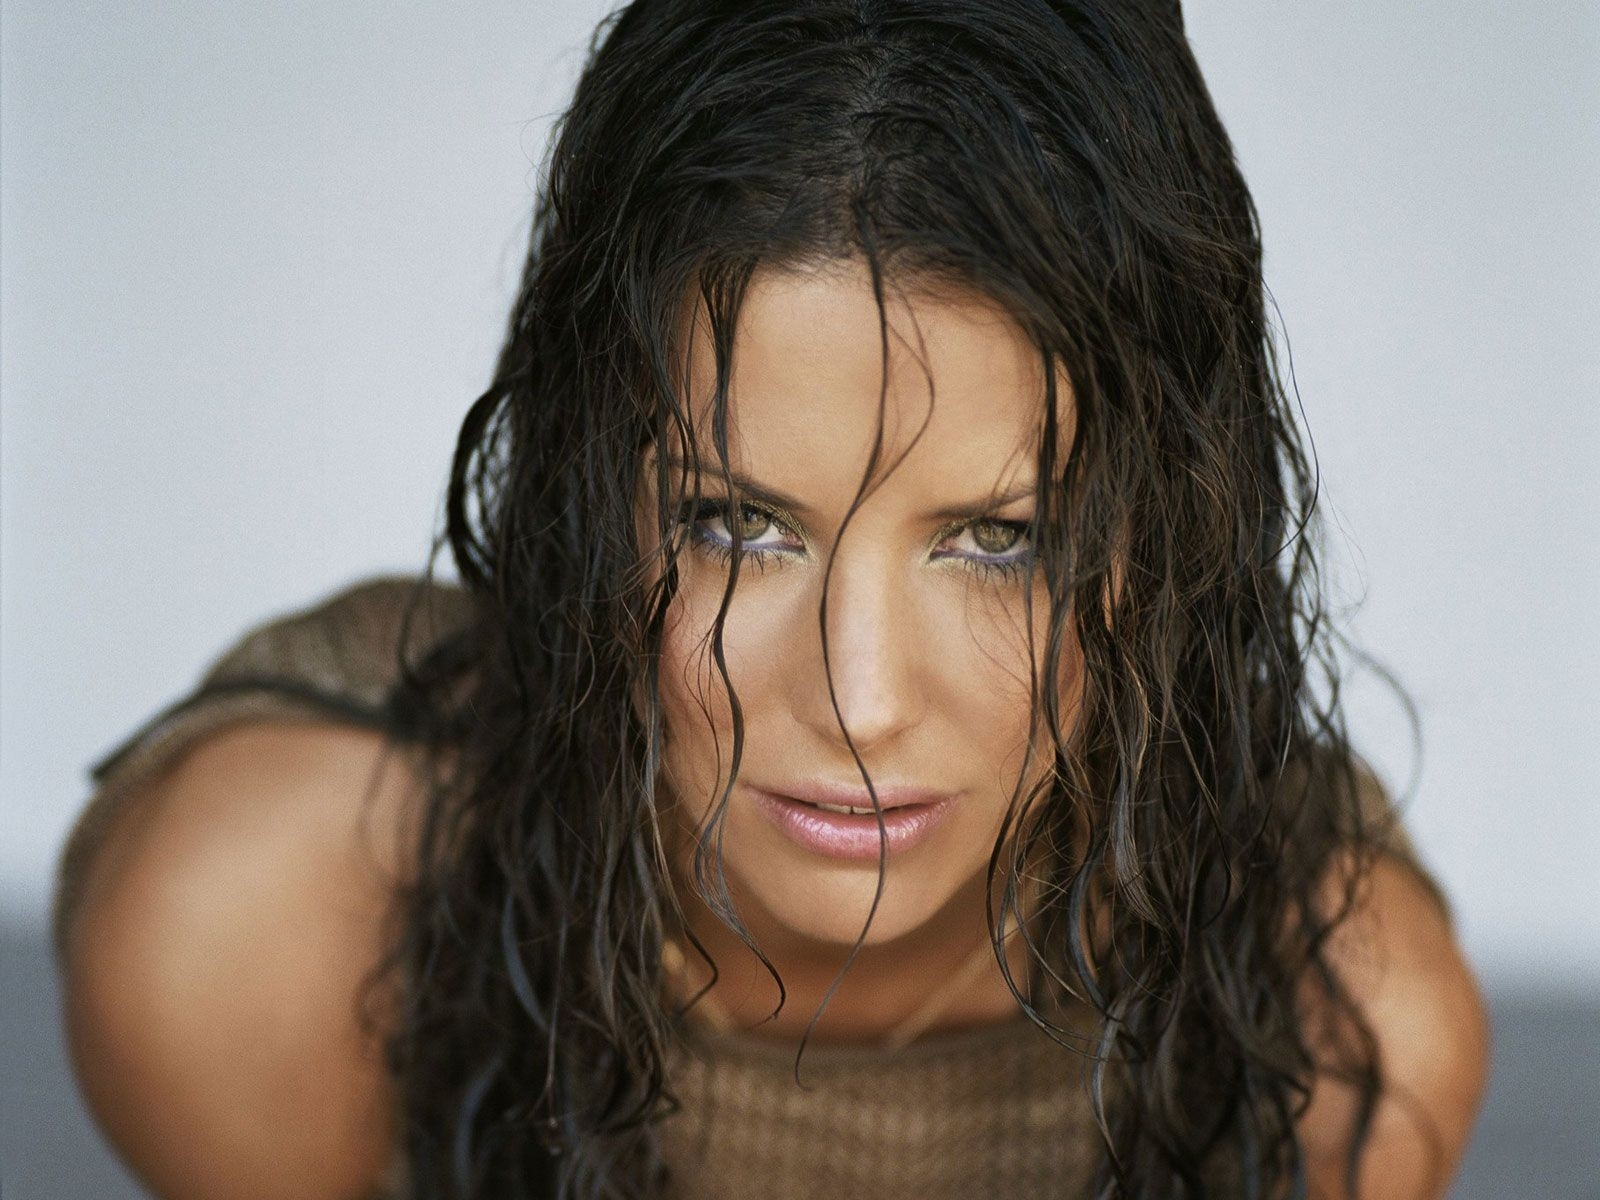 Wallpaper di Evangeline Lilly, star di Lost